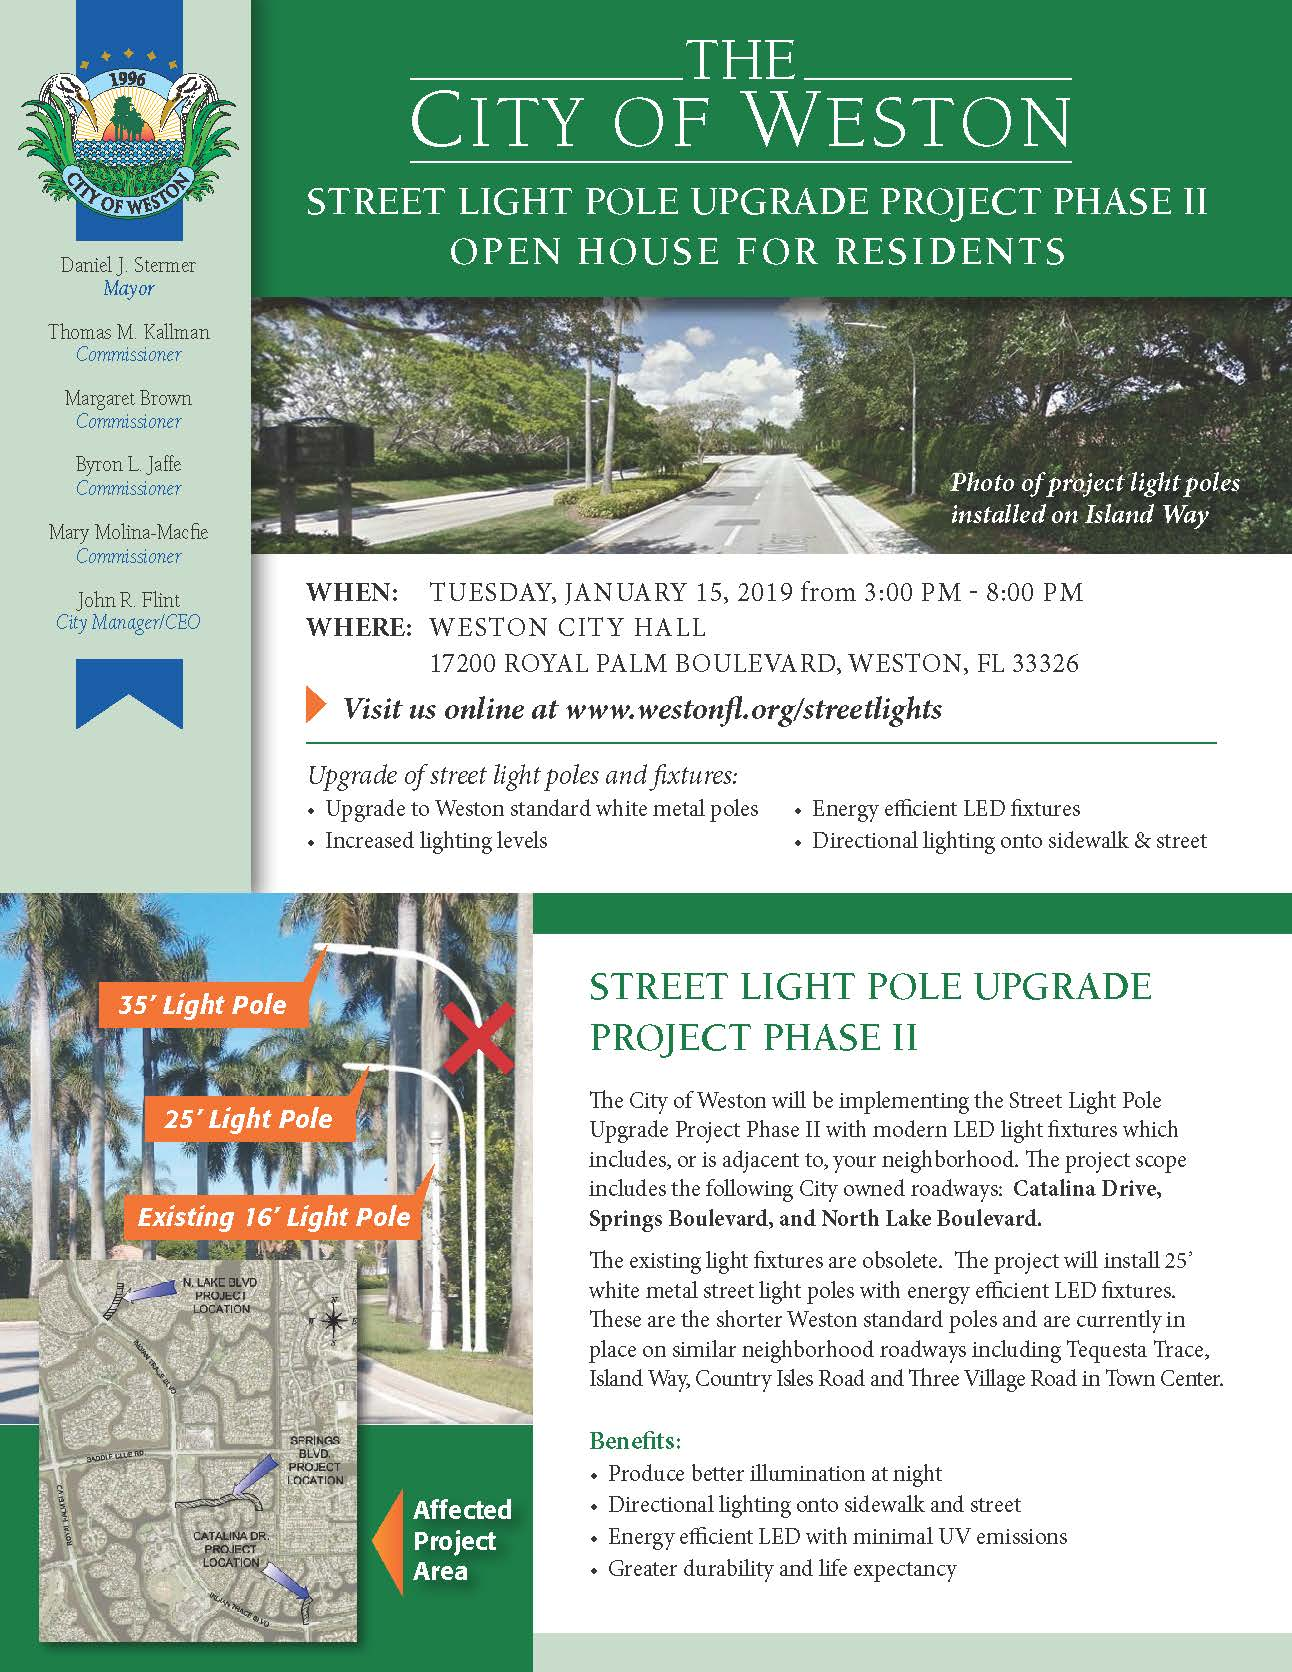 Weston Street Light Pole Upgrade Project Phase II Flyer_1-15-19